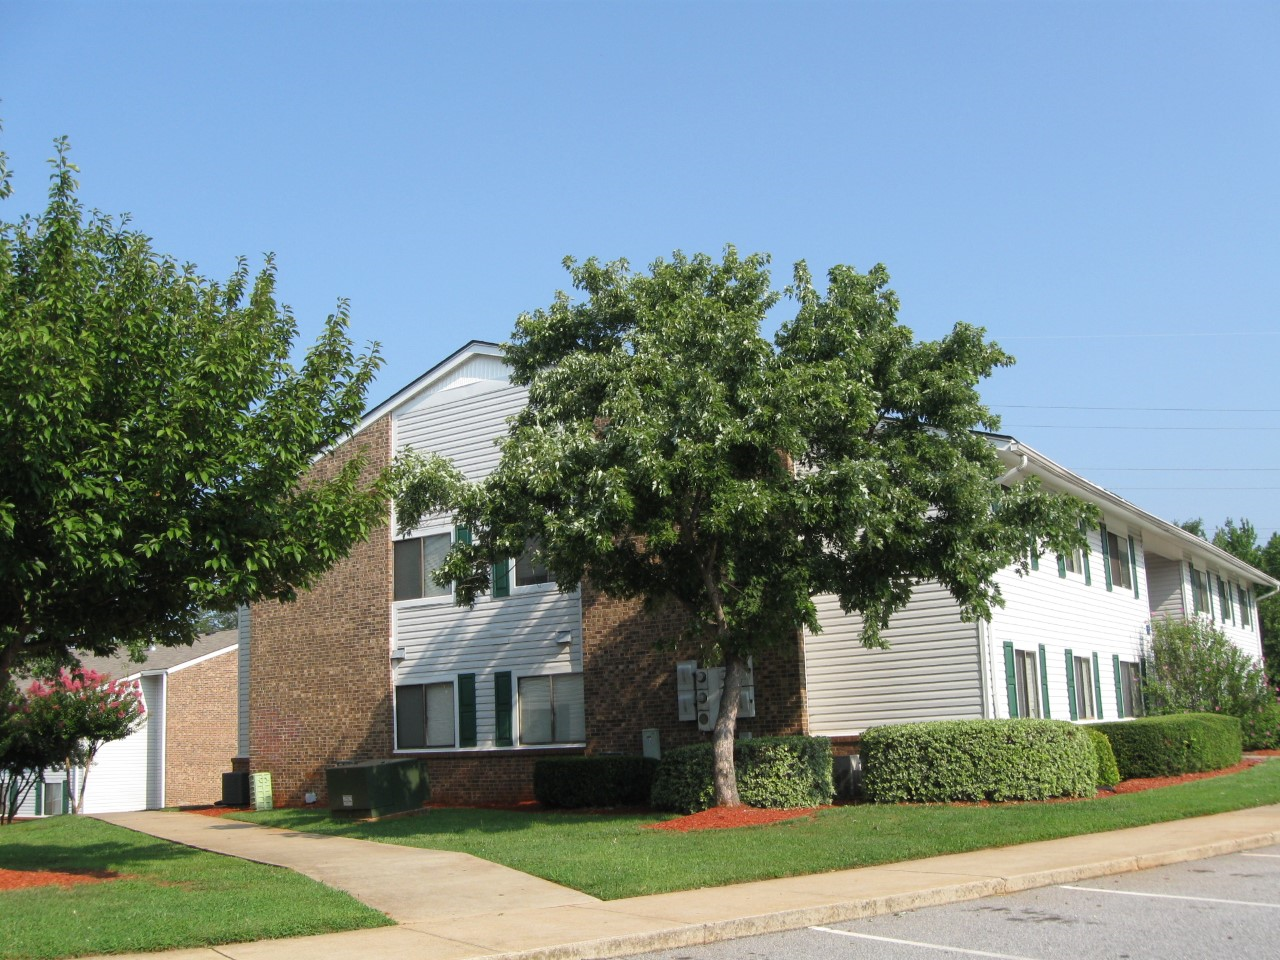 3 Bedroom Apartments In Greenville Sc Crestwood Forest Apartments Westminstercompany